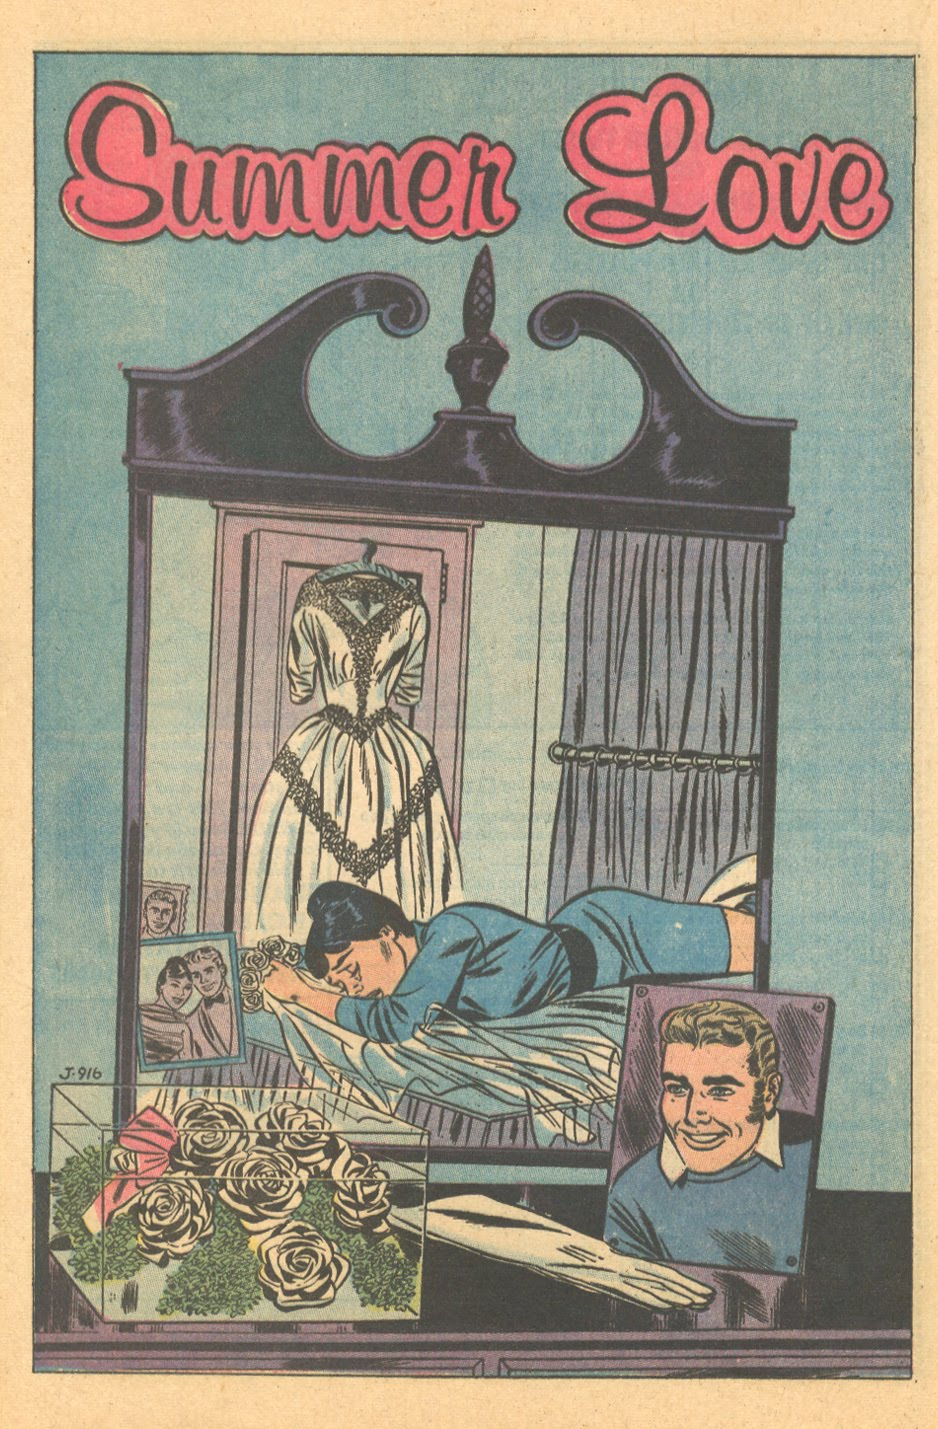 Silent romance story Heart Throbs #63 (December/January 1960)